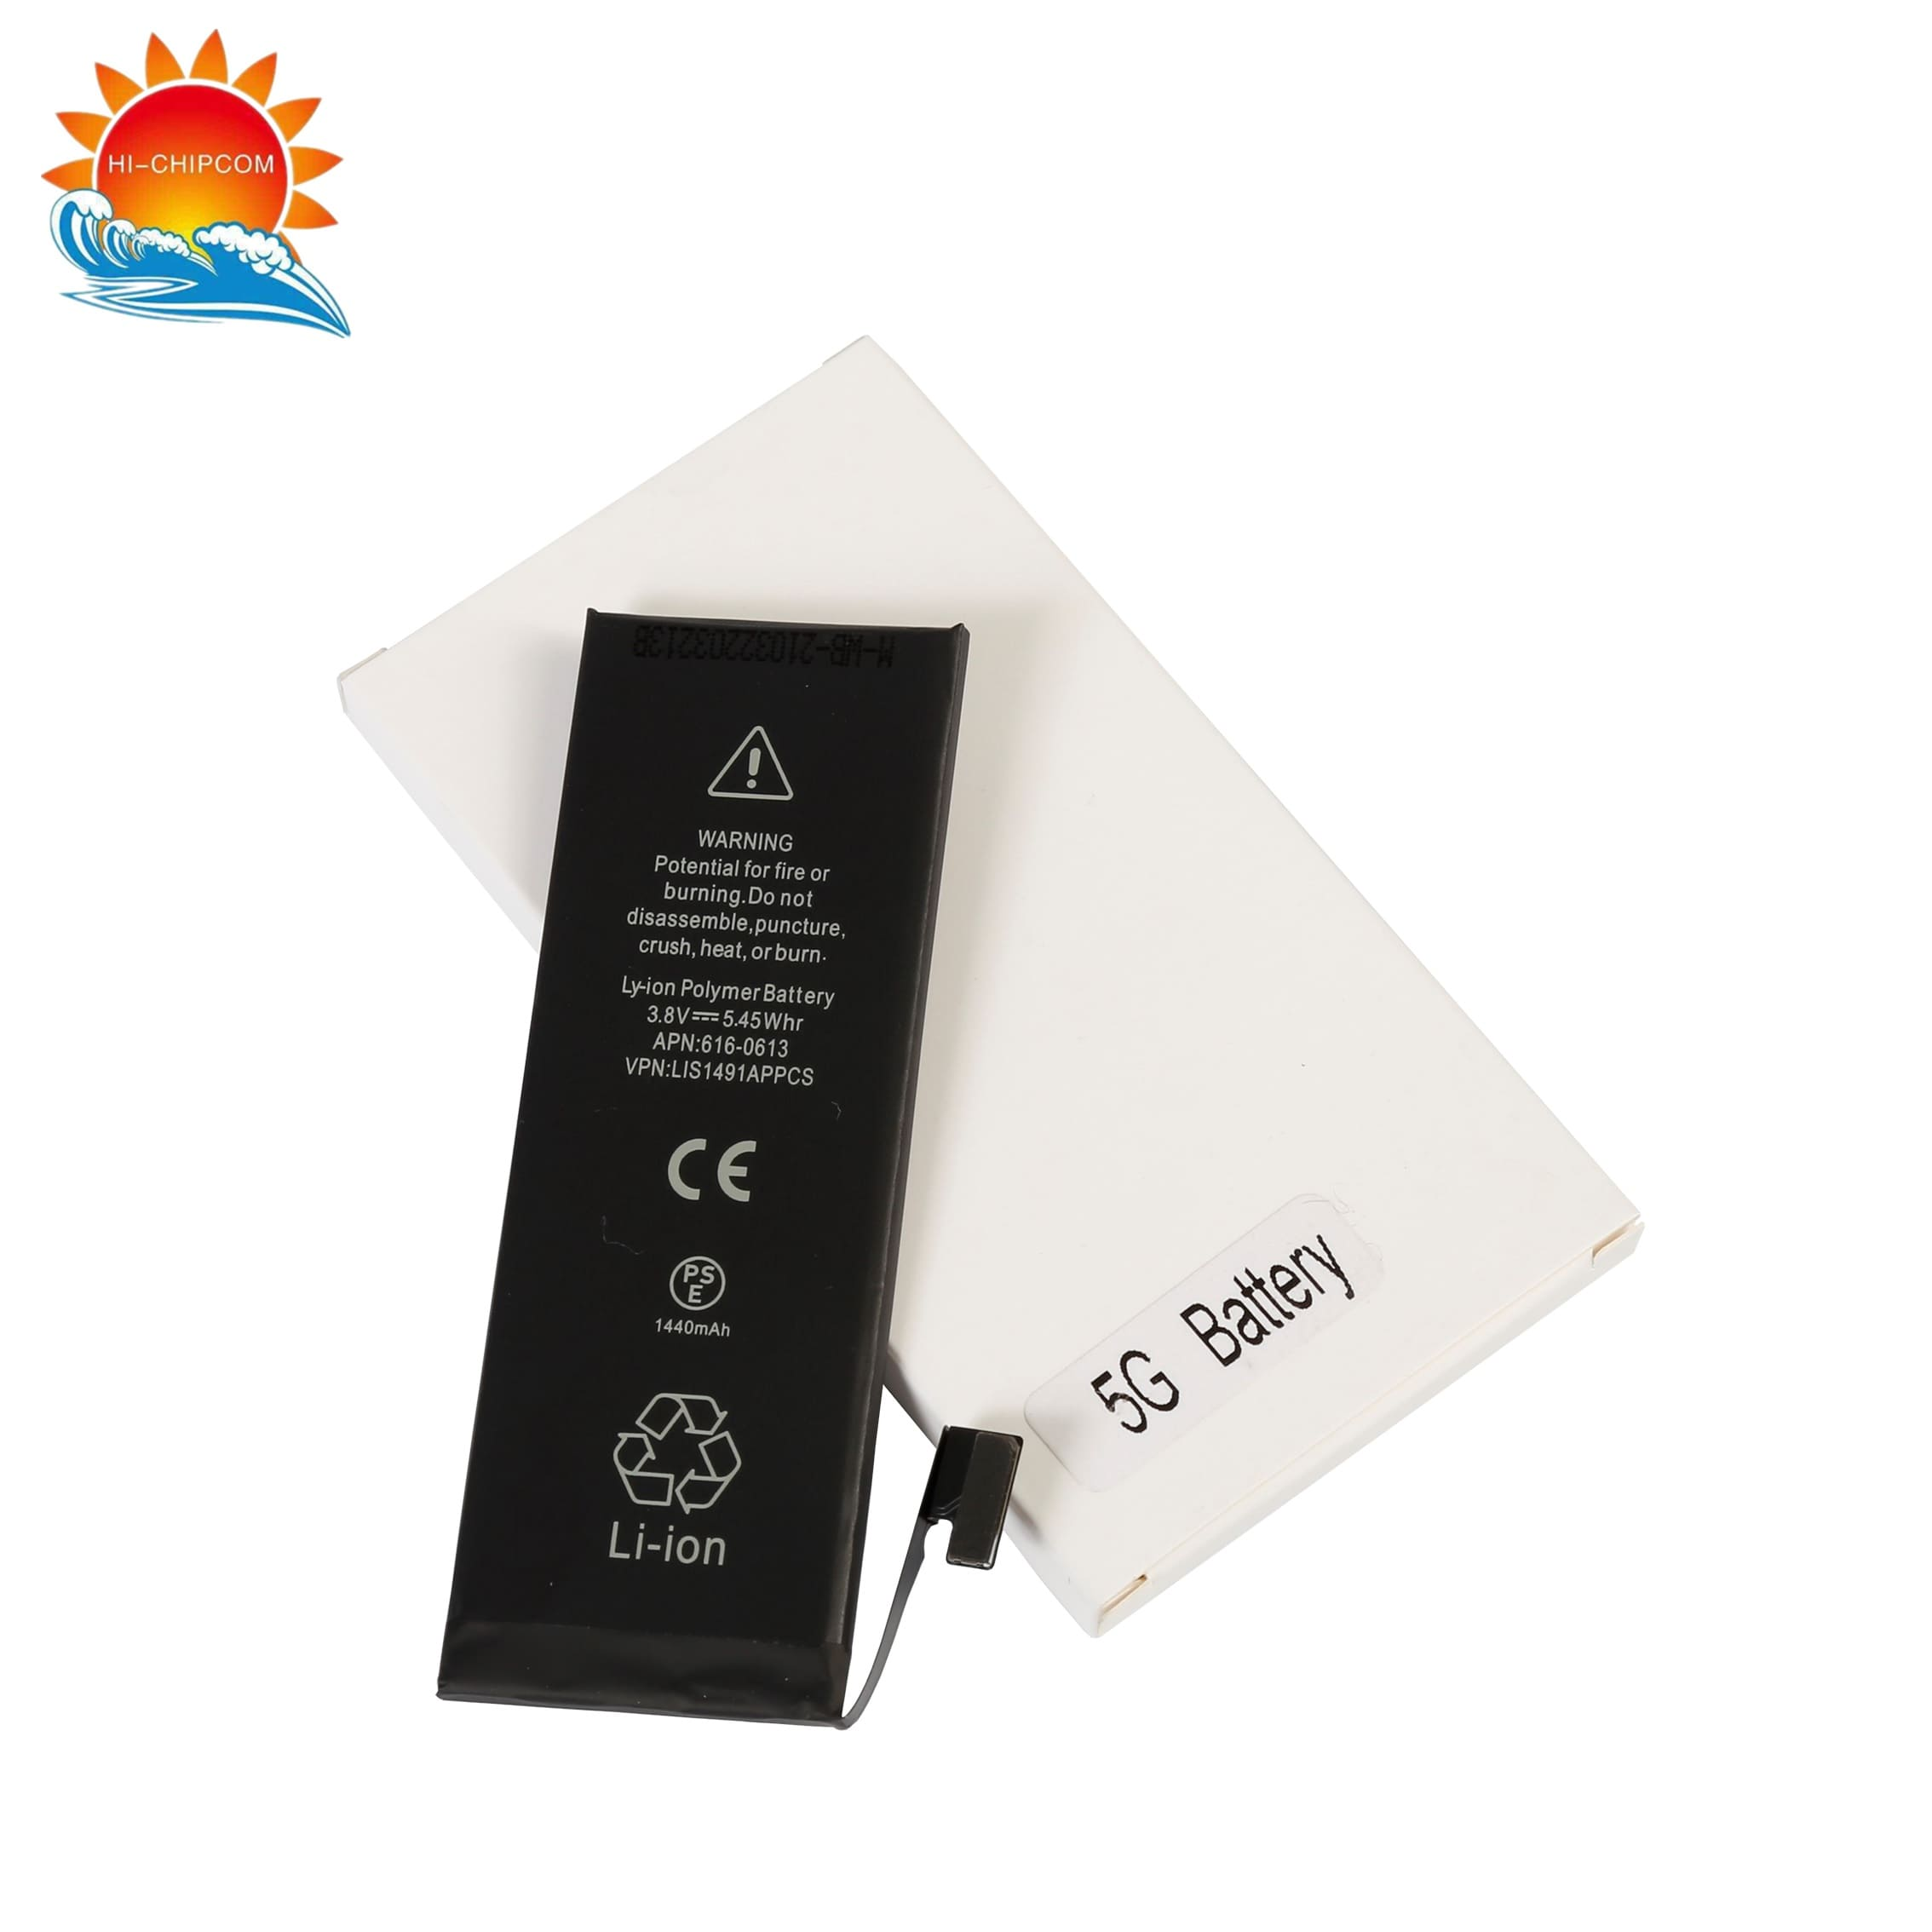 High Capacity Battery for iPhone 5